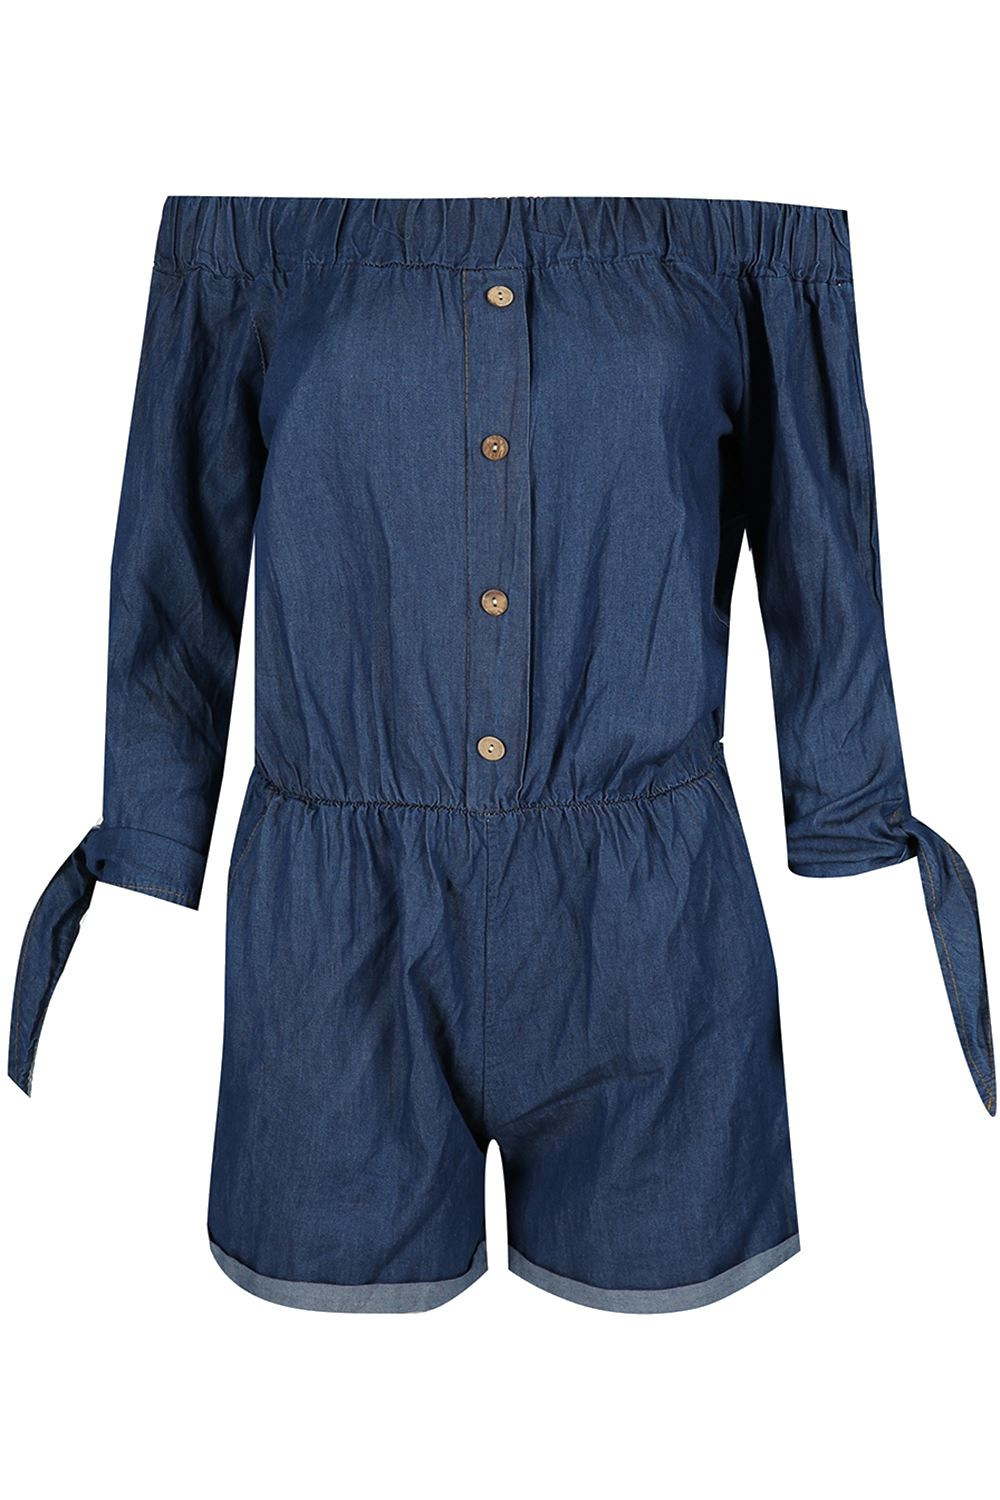 Womens Plains Summer Overall Off the Shoulder Playsuit Ladies Denim 2 in One